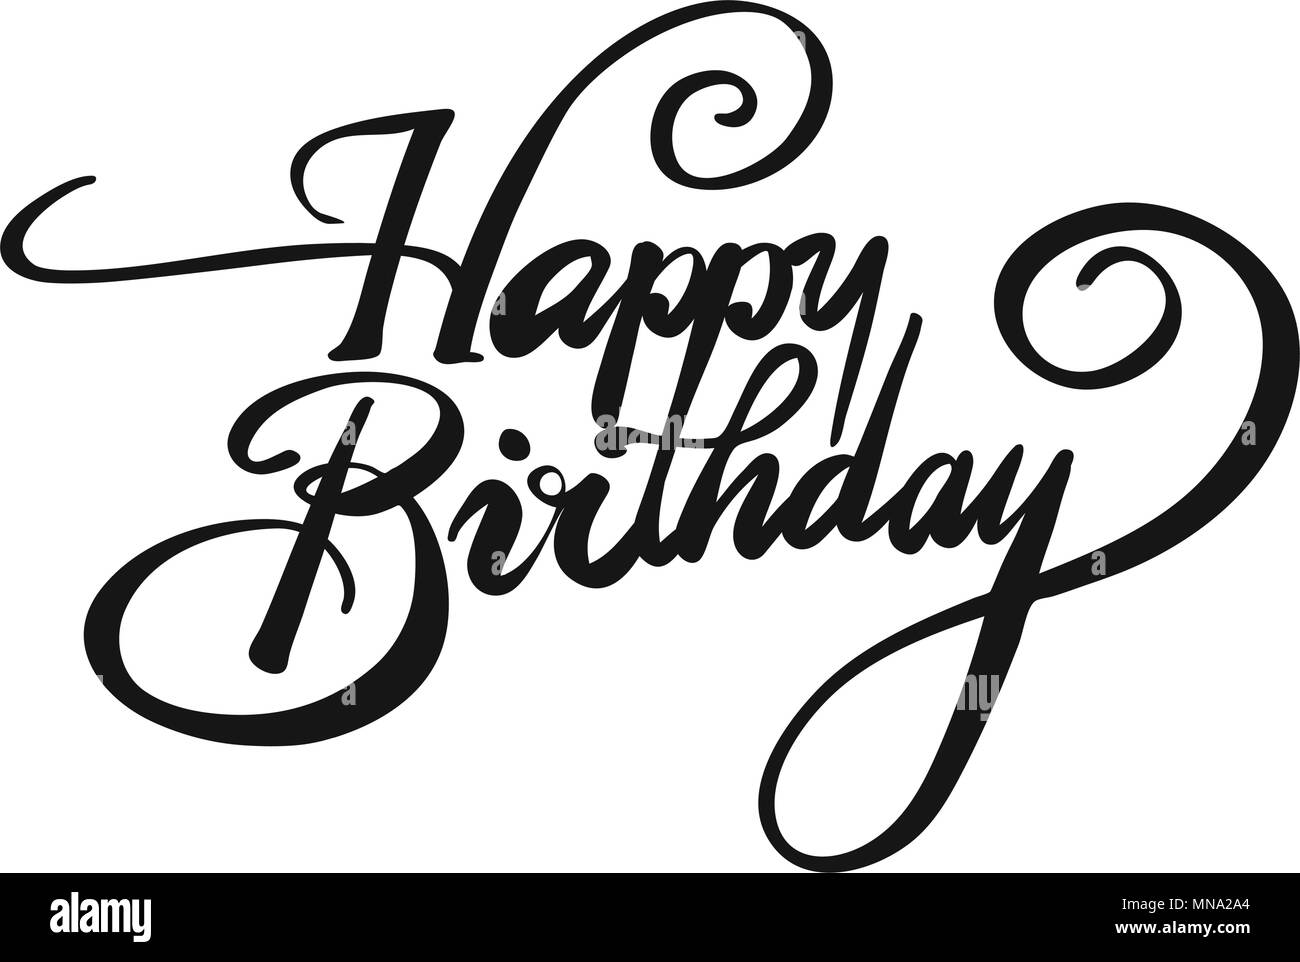 Happy Birthday Vintage Headline Design Hand Drawn Vector Calligraphy Greeting Card Concept